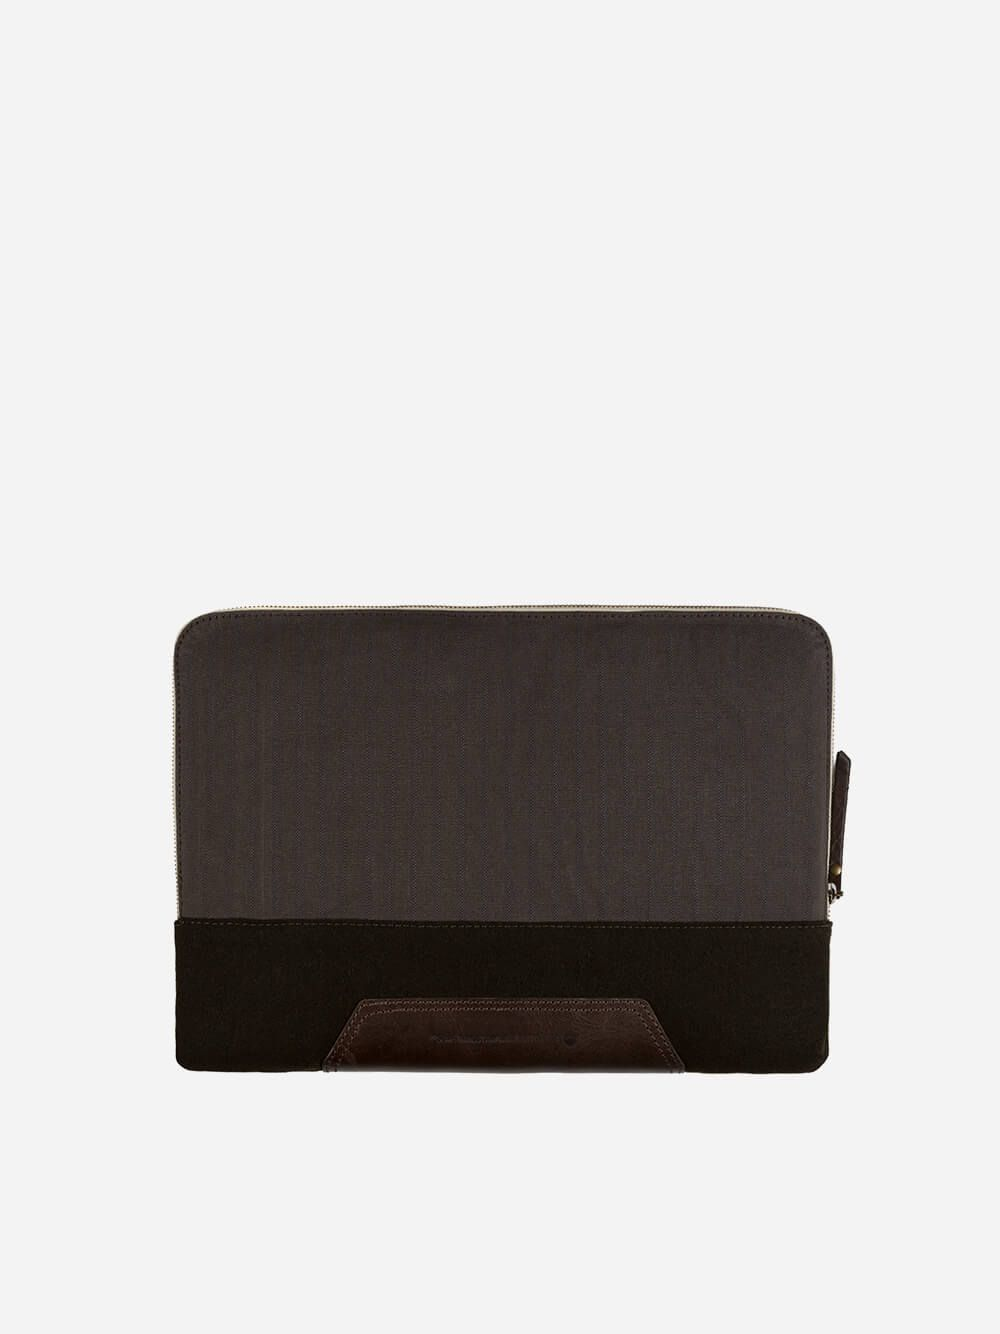 Dolinda Tablet-Laptop Sleeve I | Ideal & Co